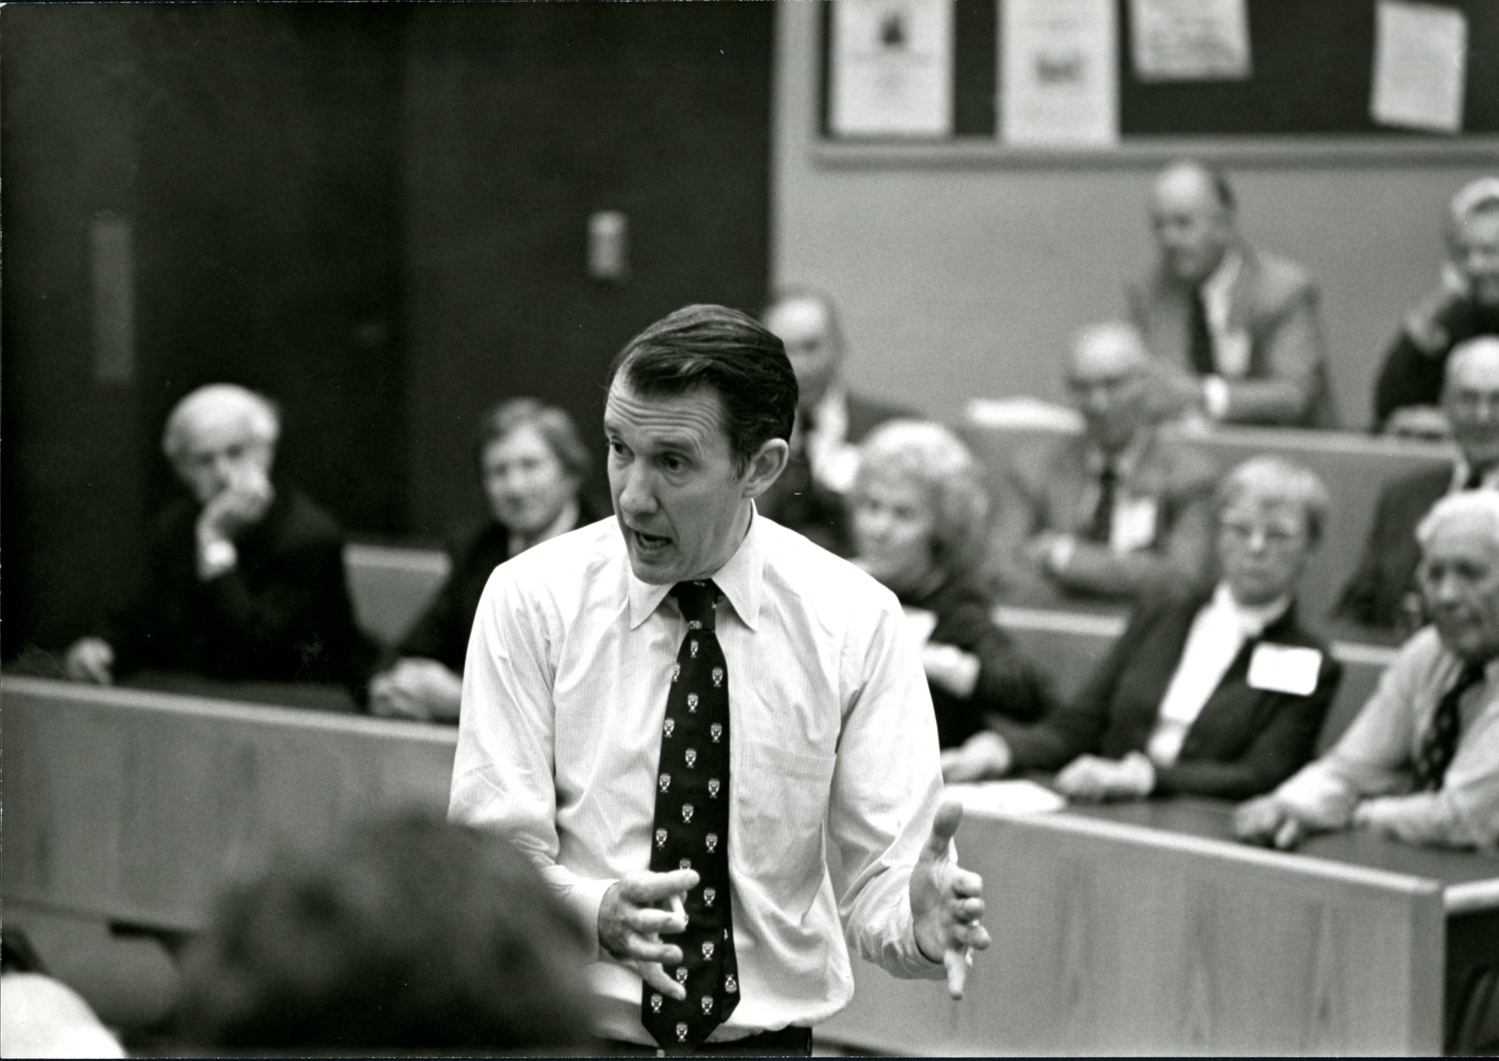 Hugo E. R. Uyterhoeven, a longtime Business School professor and administrator, died at 86. Uyterhoeven is pictured here teaching in the 1970s.